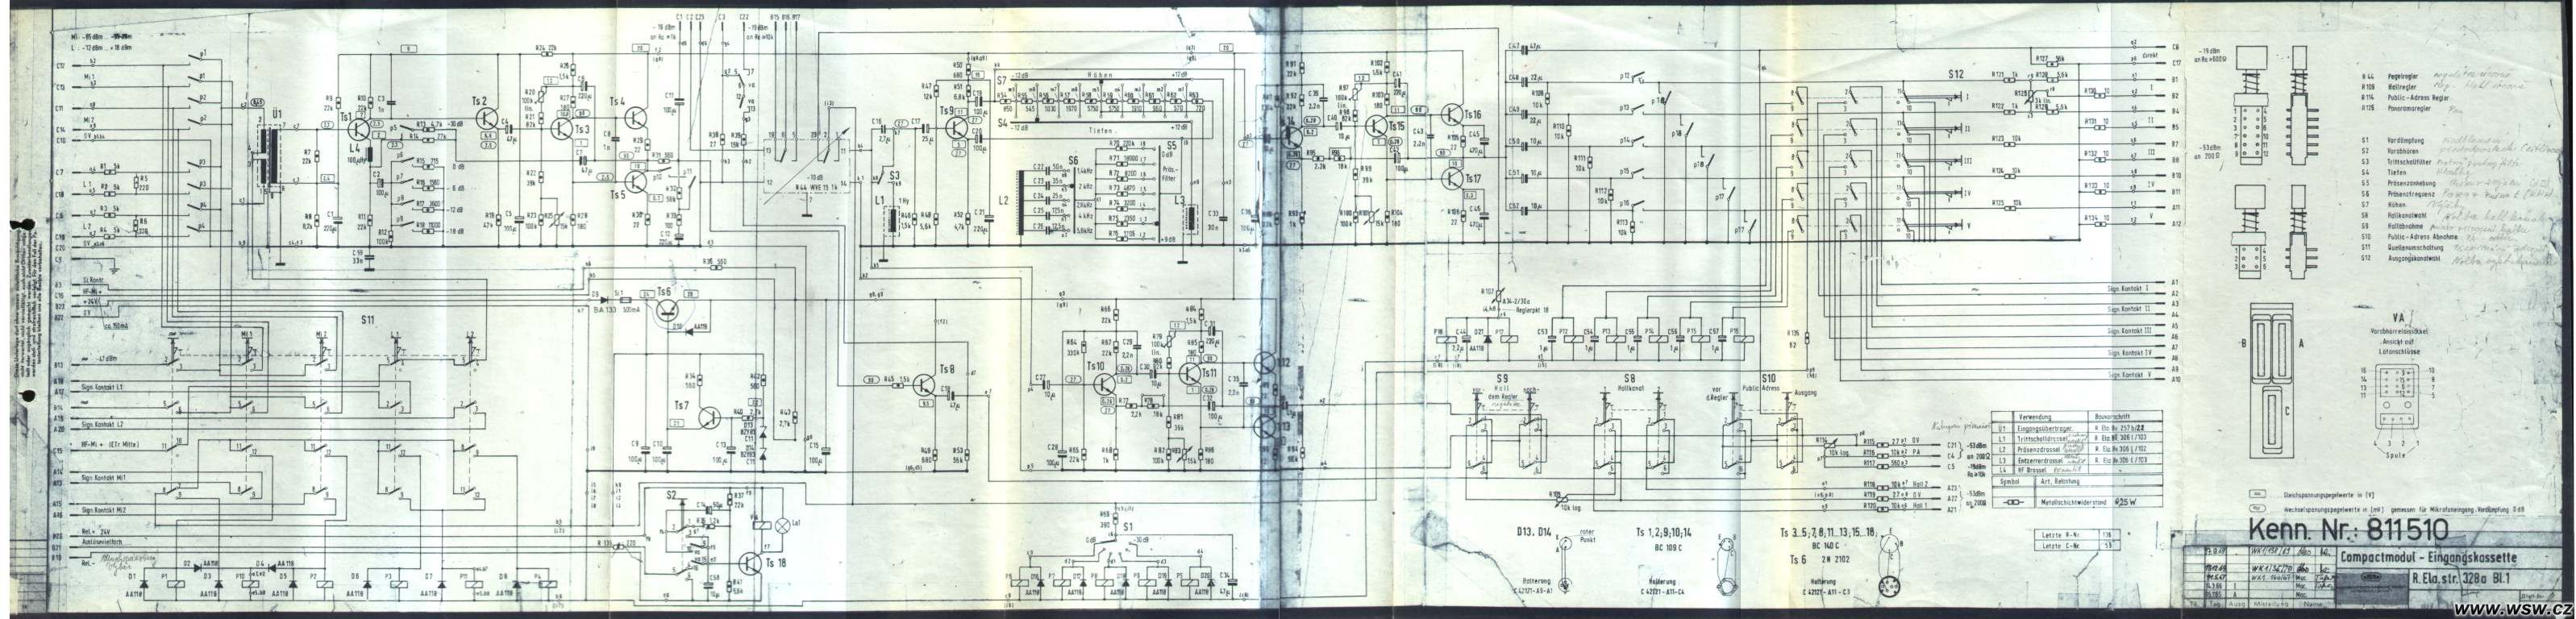 schematic for behringer rx1602 mixer wsw cz 01wsw mono in wsw schema in mono jpg